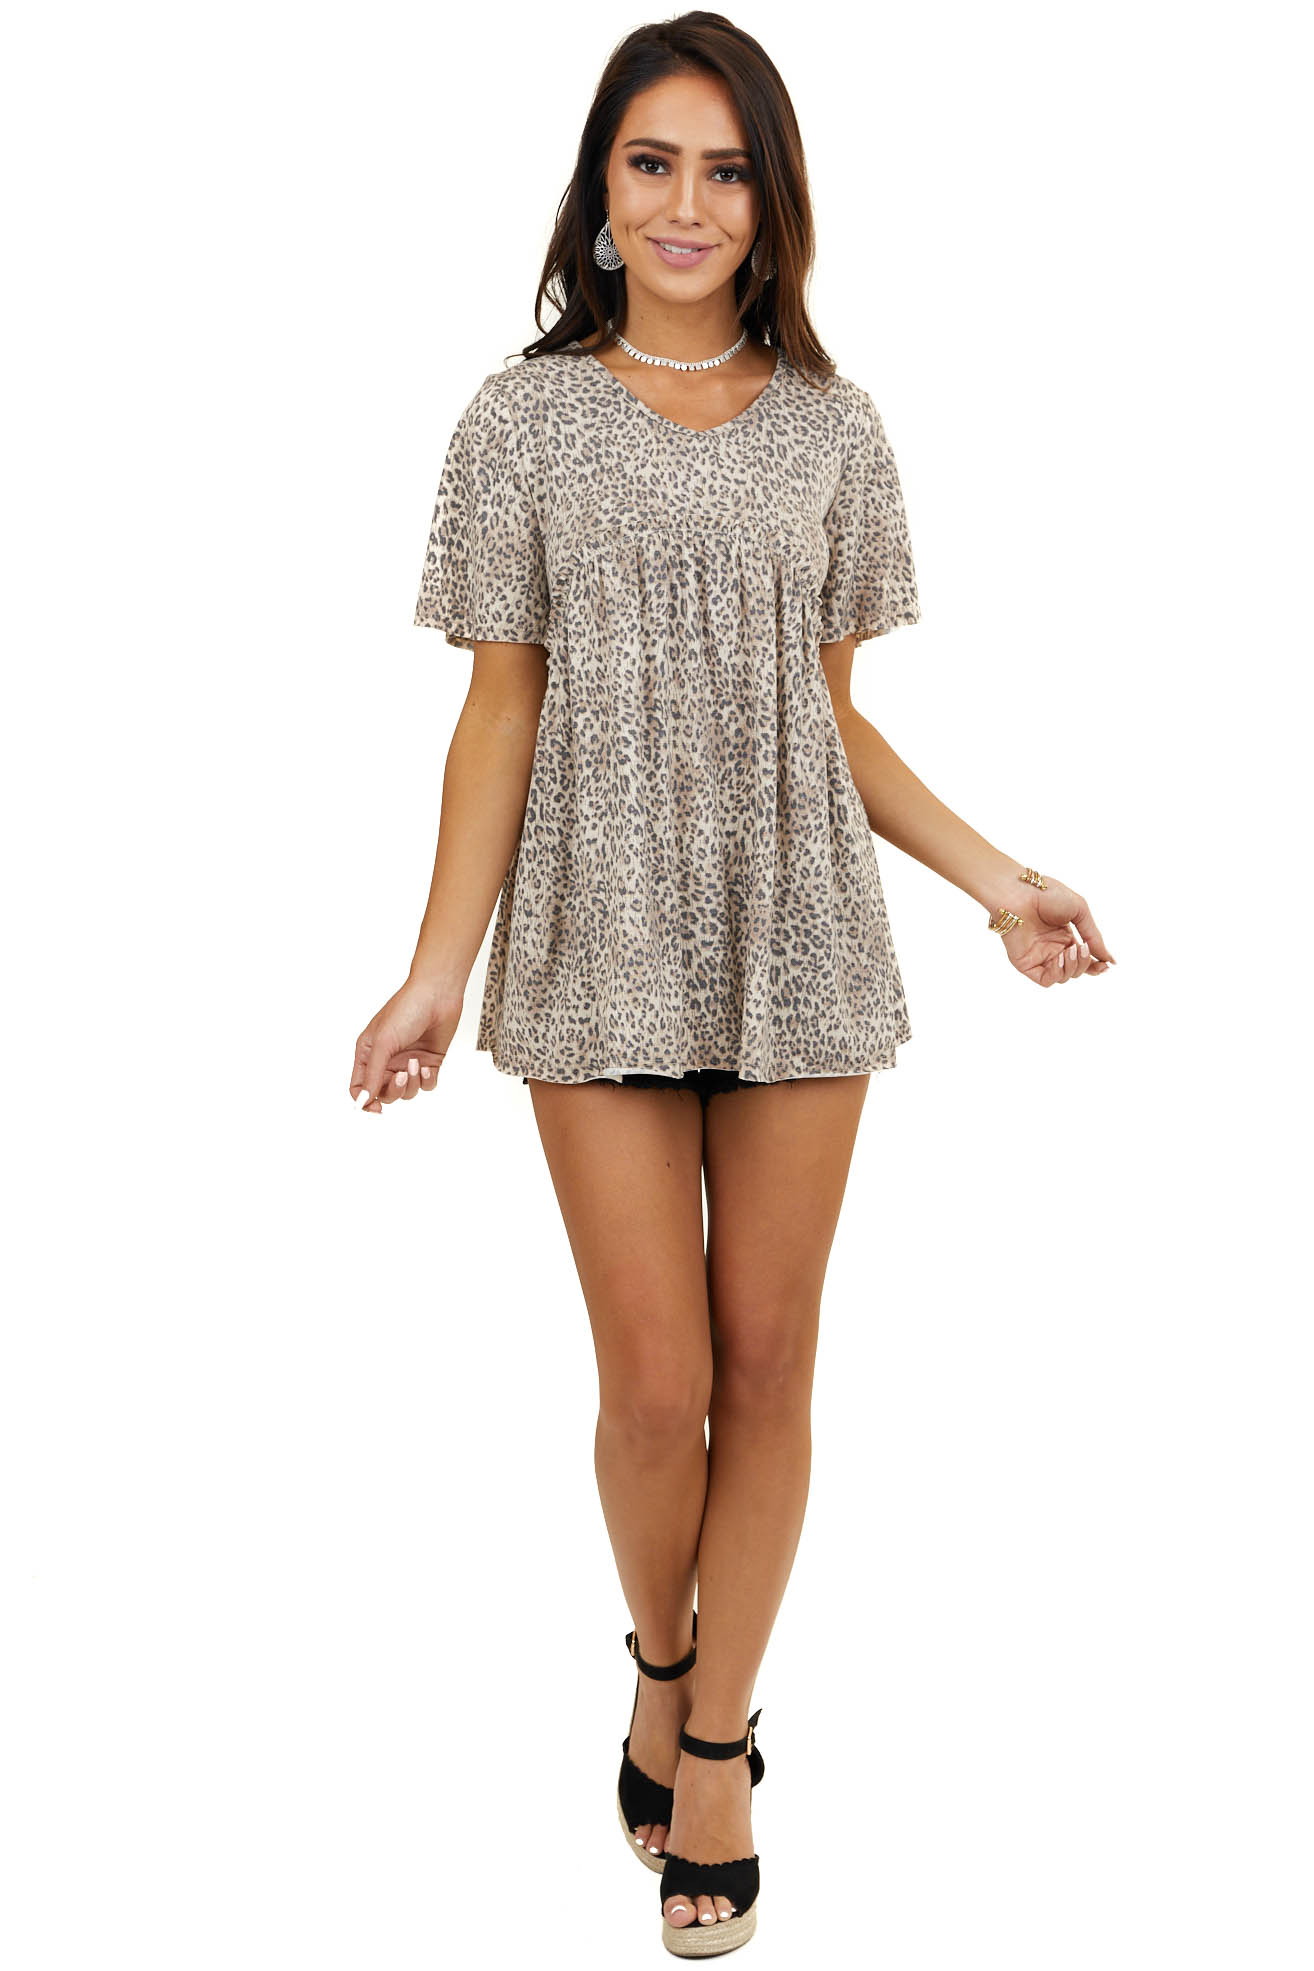 Latte Leopard Babydoll Short Sleeve Top with Ruffle Detail